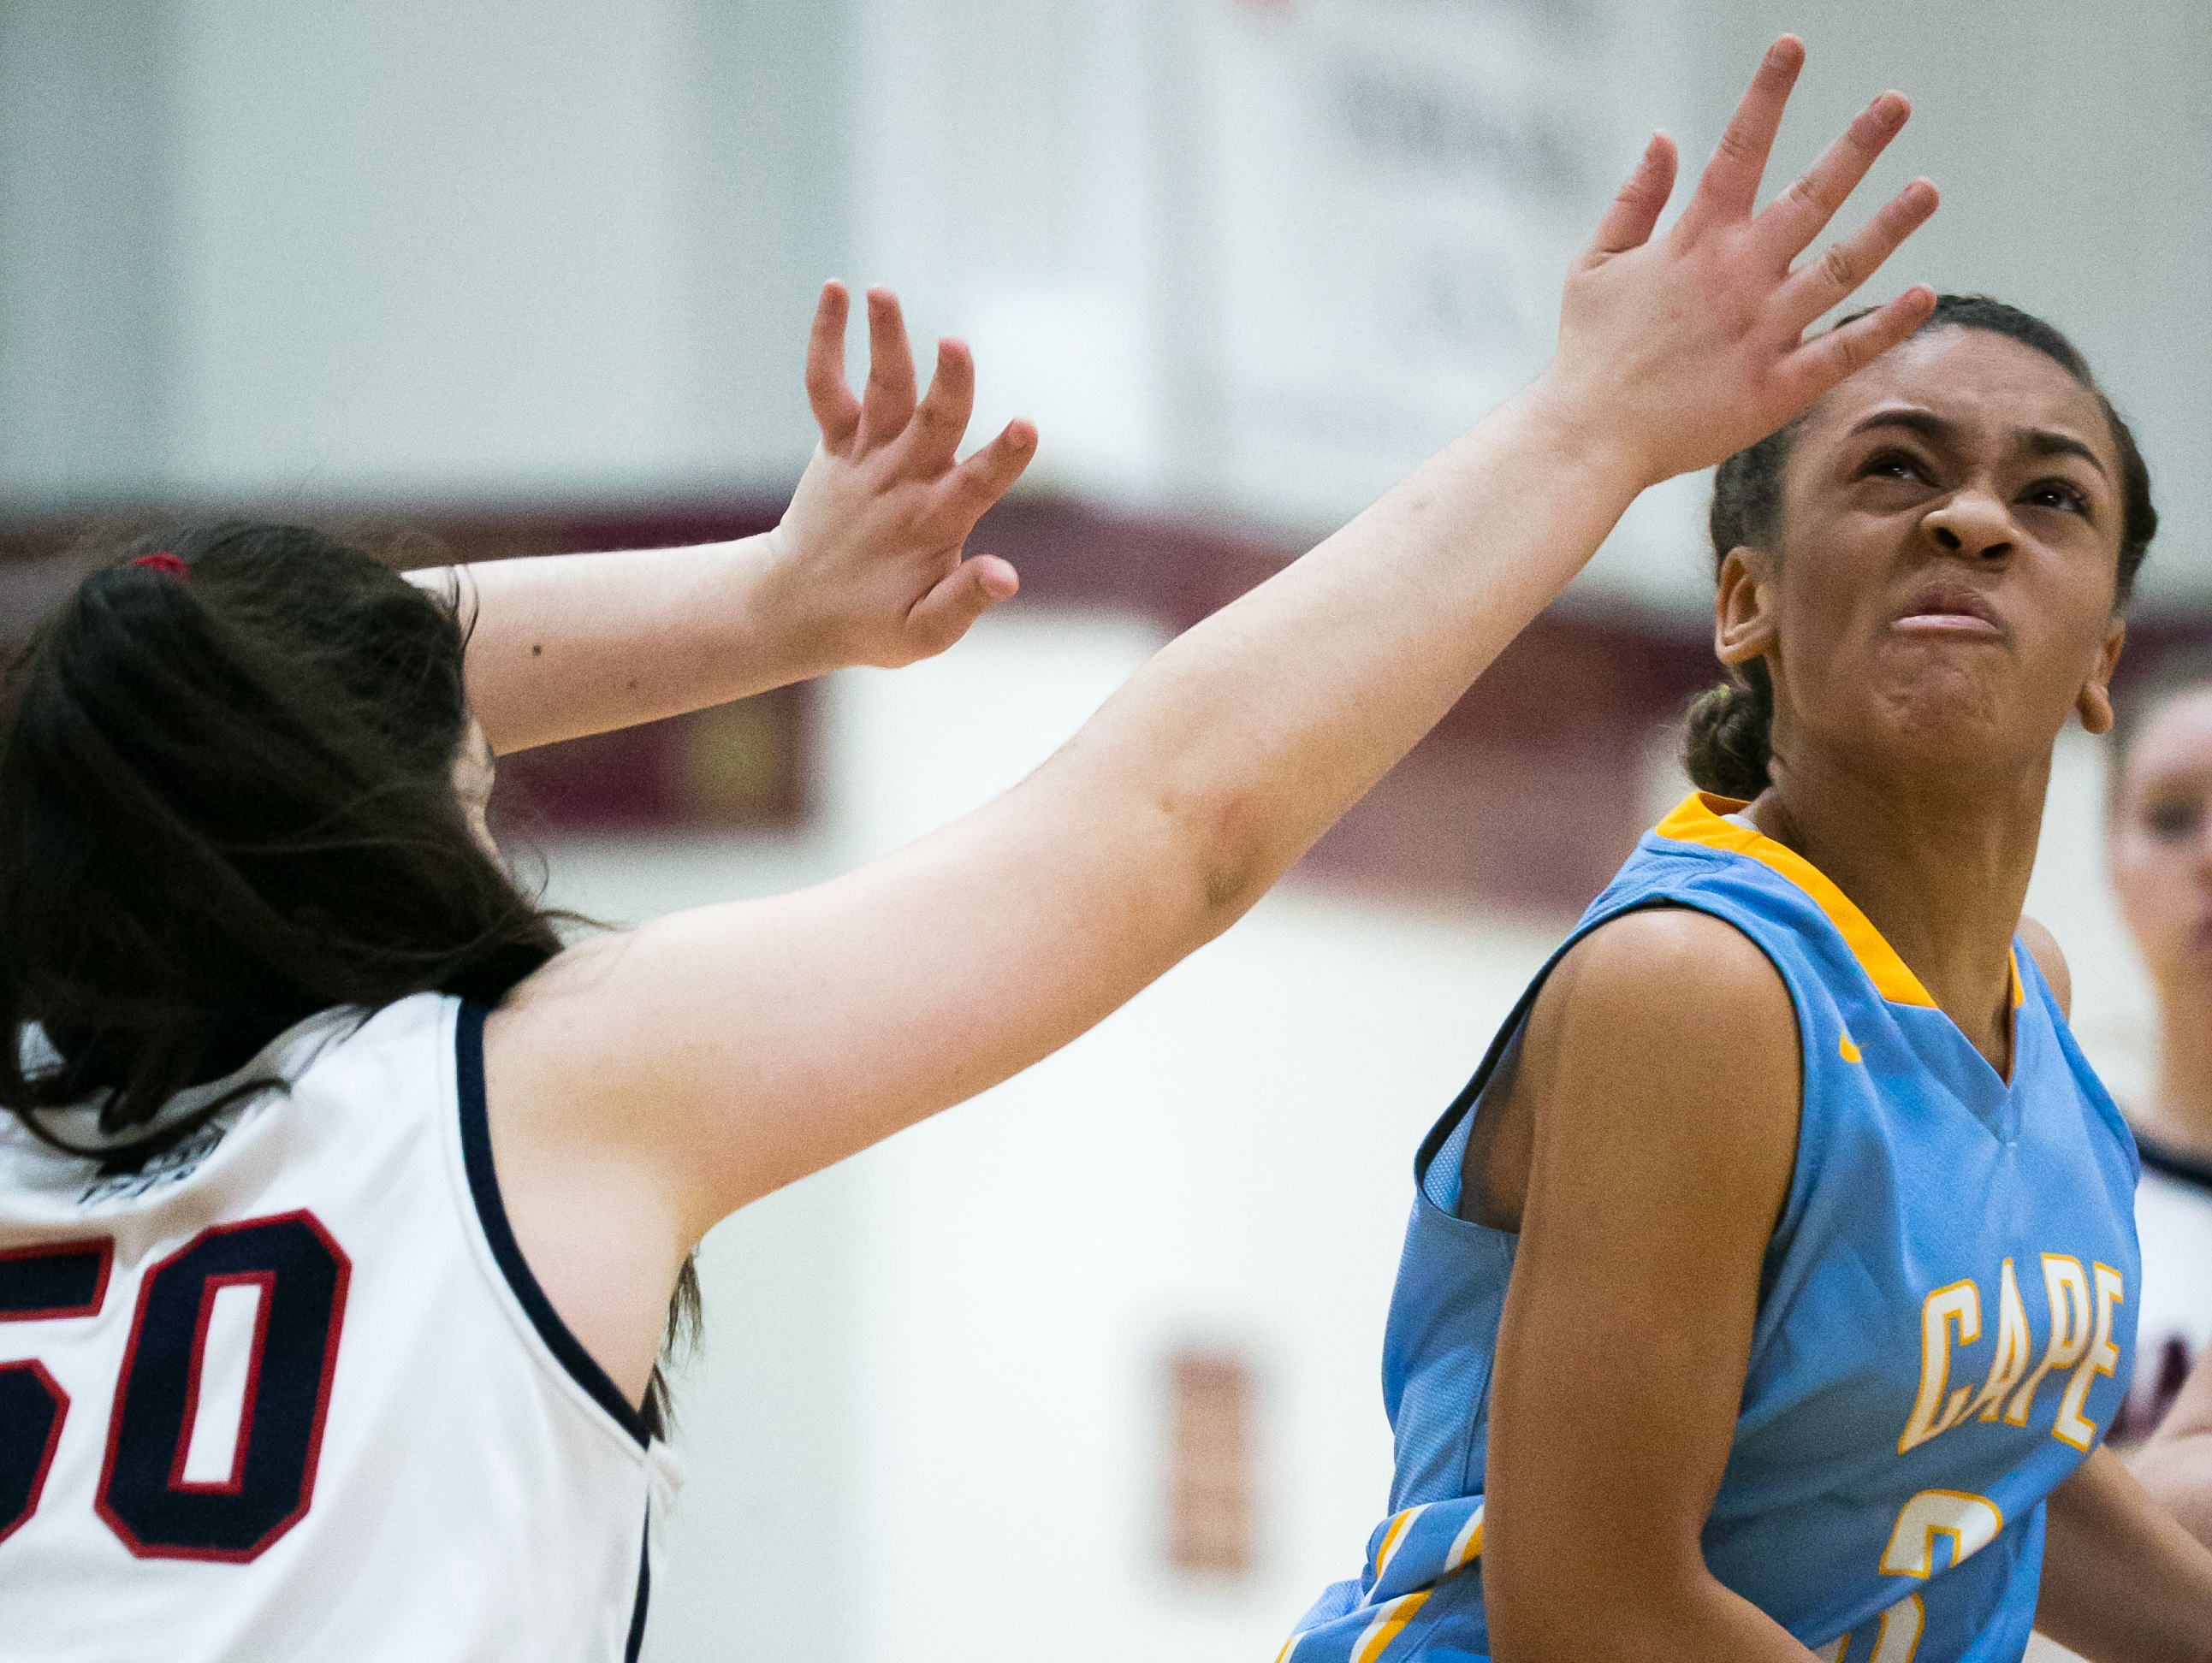 Cape Henlopen guard Dania Cannon (right) drives around Wilmington Friends' Natalie DePaulo and sinks the basket for two.